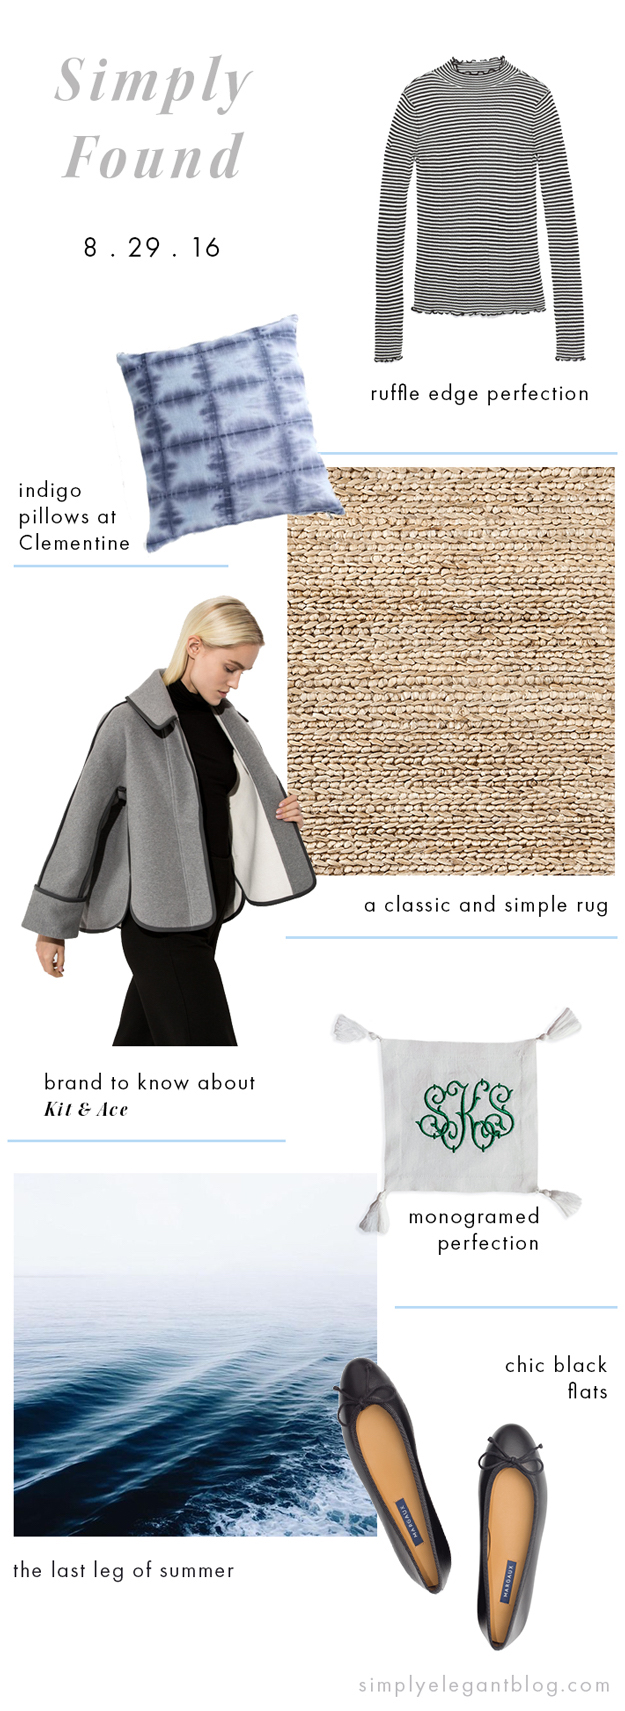 Simply Found 12 - Shopping List. Zara Striped Top, Dash Albert Jute Rug, Kit and Ace, Margaux Ballet Flats